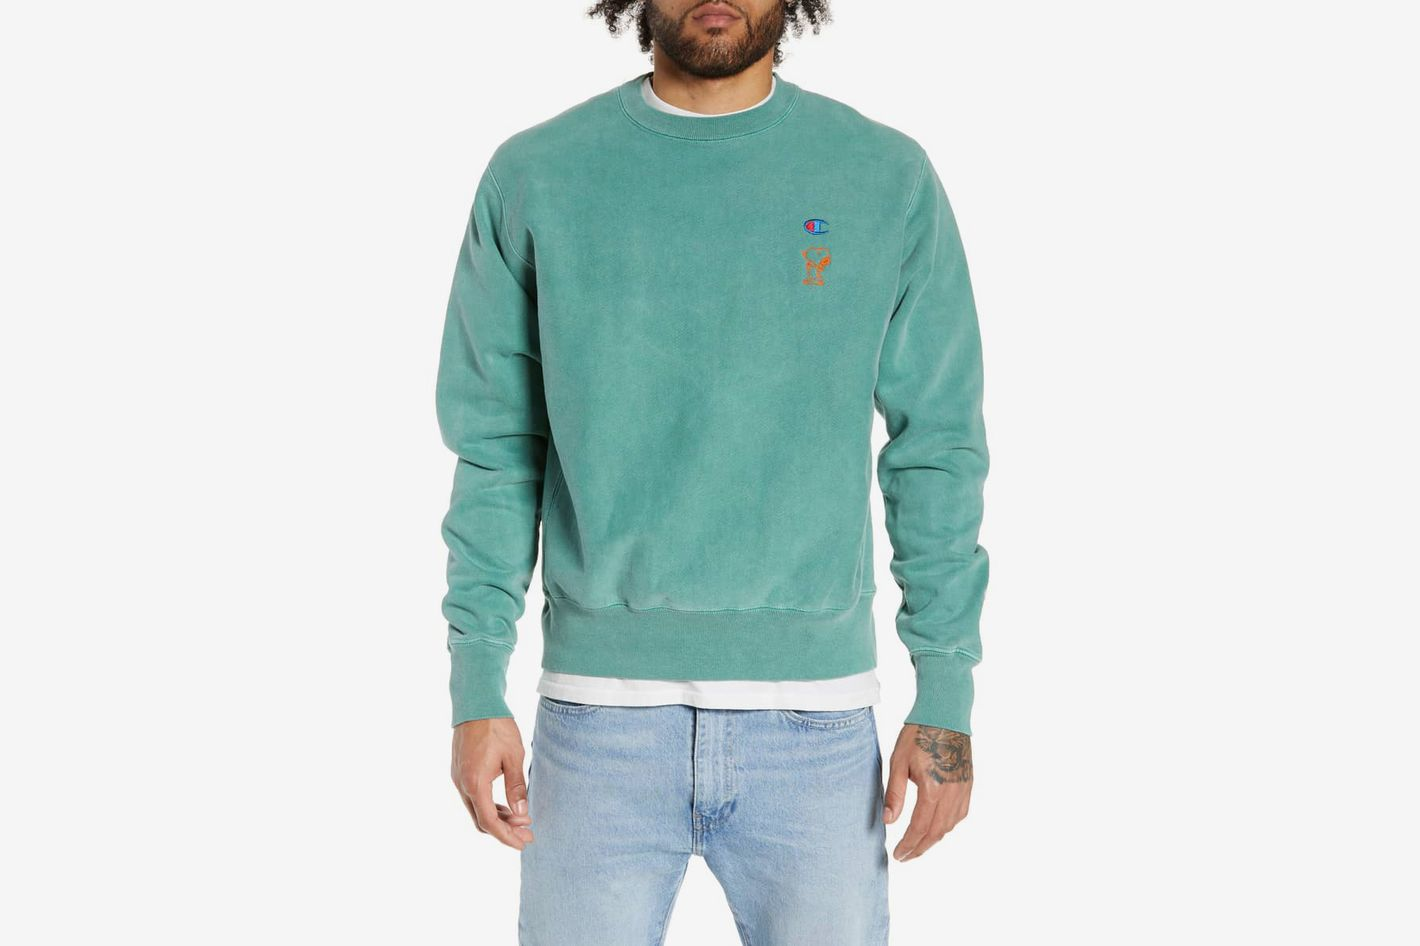 Champion Reverse Weave Snoopy Sweatshirt